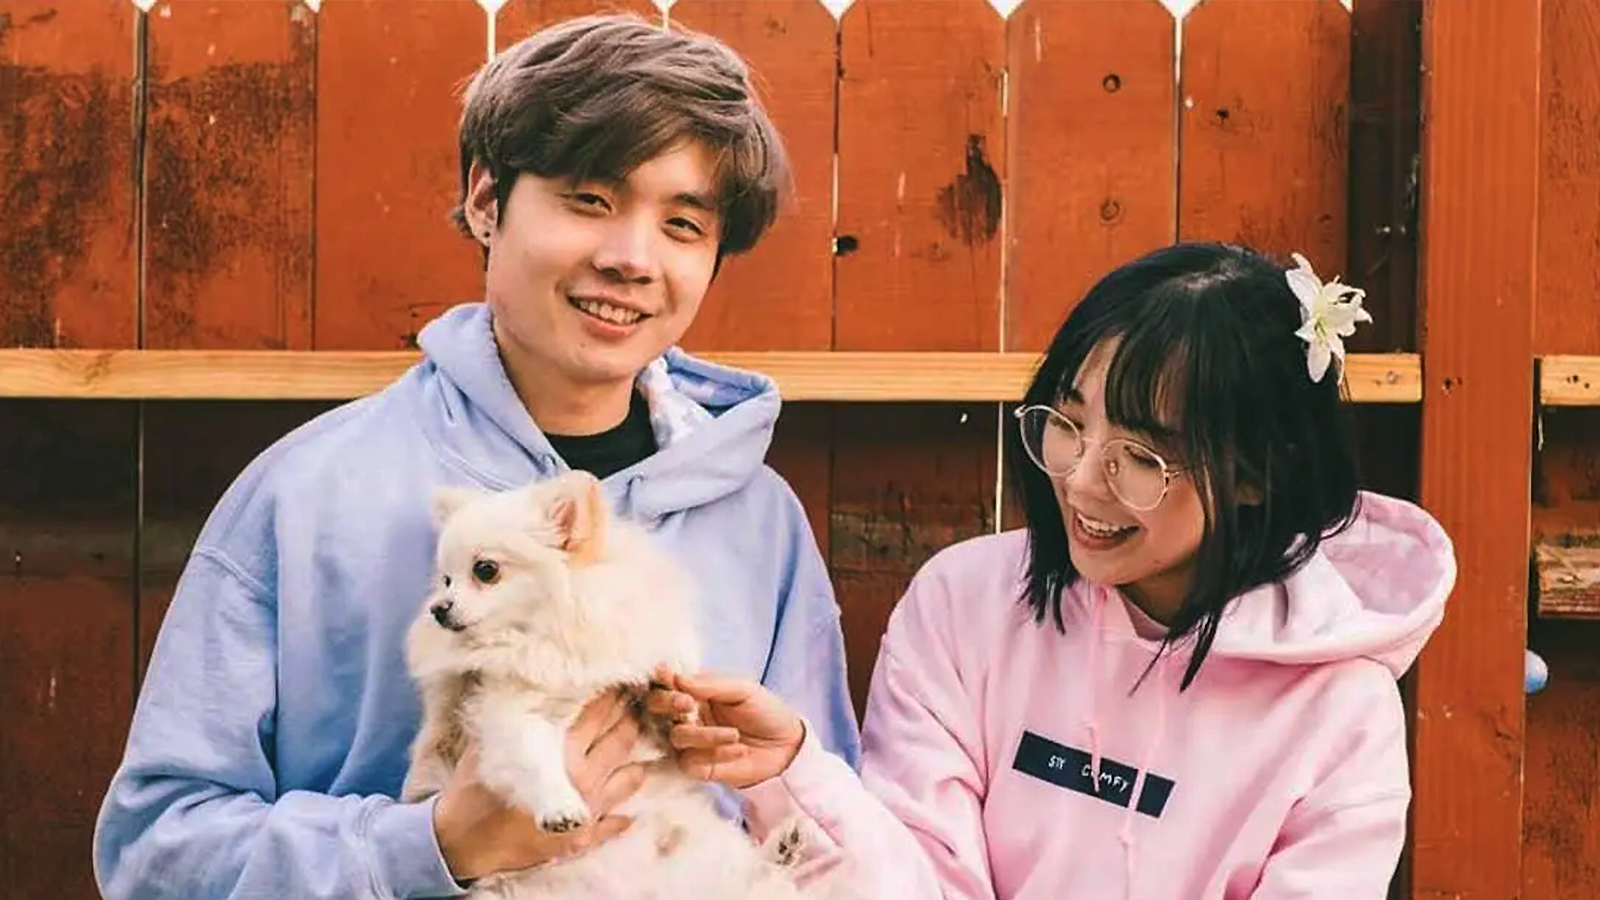 Sleightlymusical and LilyPichu holding dog together